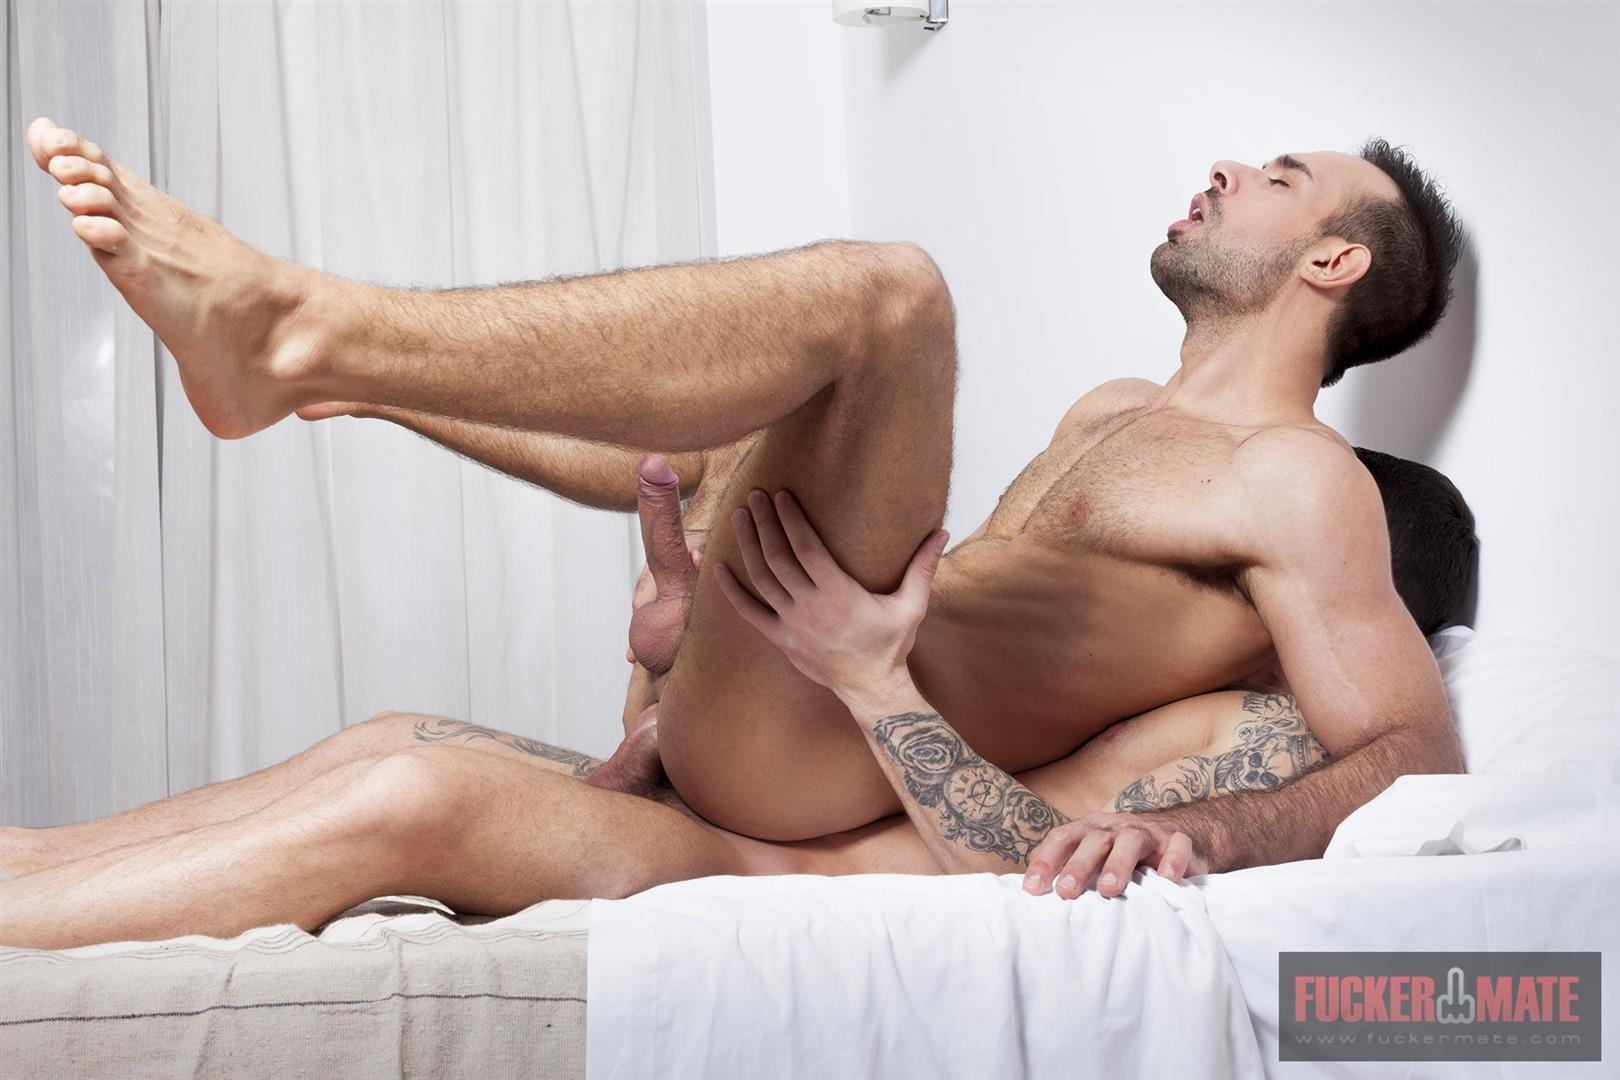 Fuckermate Alejandro Torres and Jonathan Forrest Big Uncut Cock Bareback Sex 09 Big Uncut Cock Italian Hunk Gets Fucked In The Ass Bareback